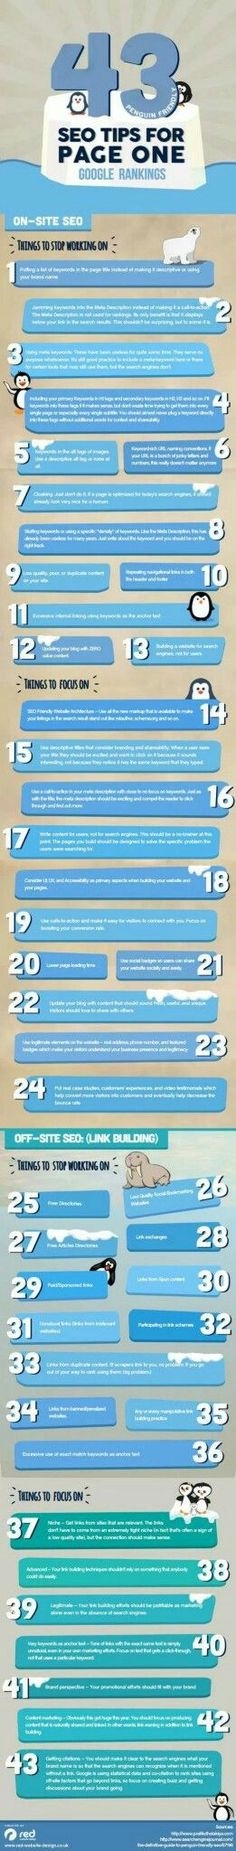 43 SEO Tips for Page One Google Rankings